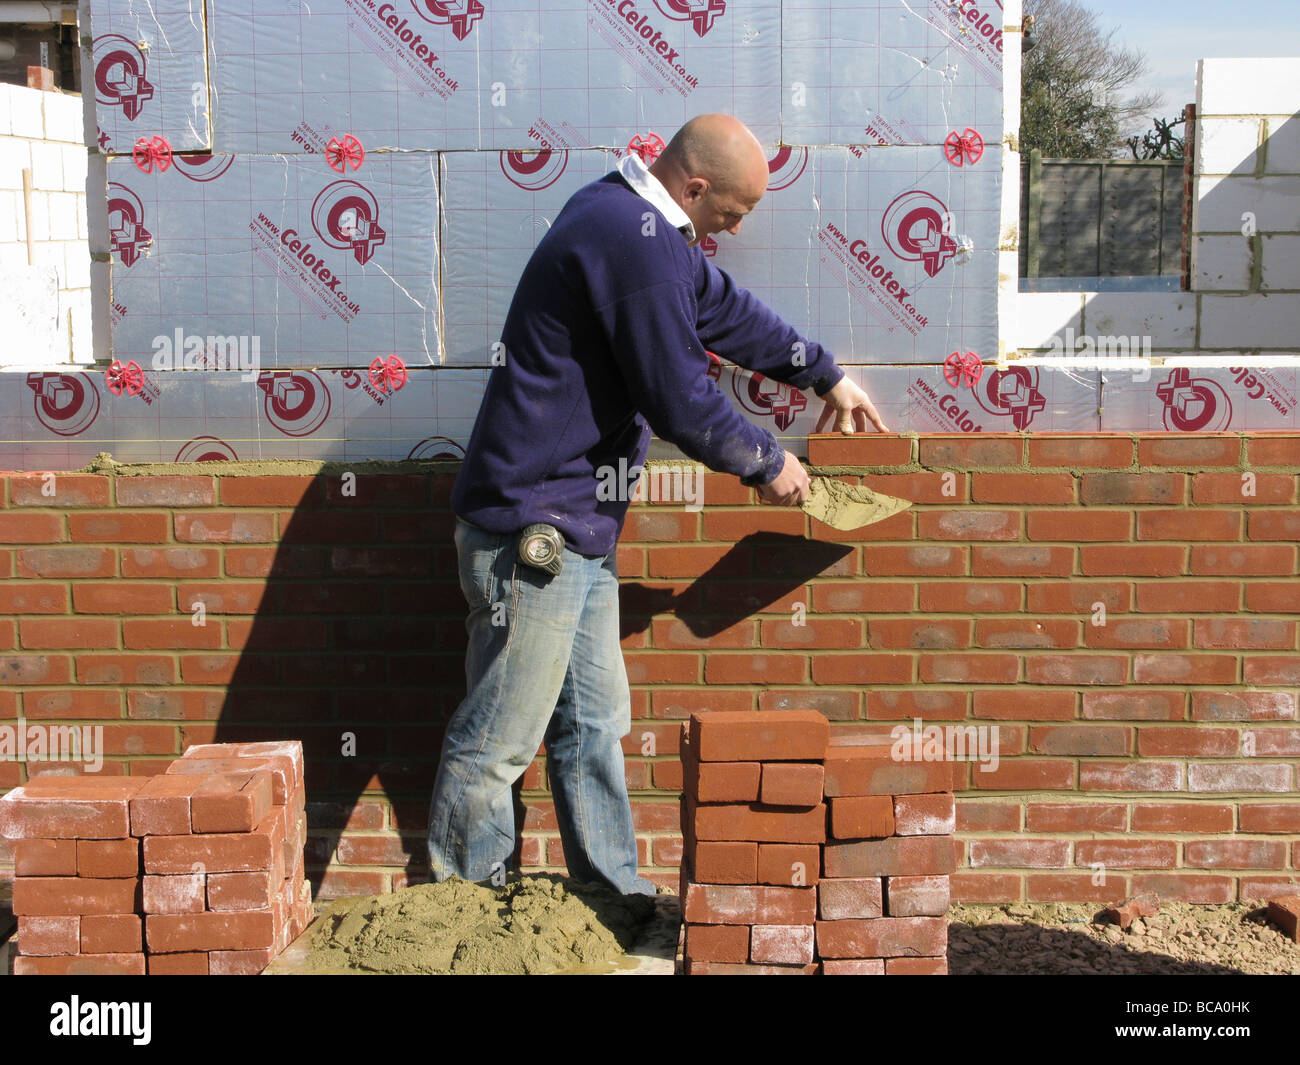 Builder Construction Worker Working On A Brick Wall Cementing Bricks In Showing Celotex Thermal Insulation Board Cavity